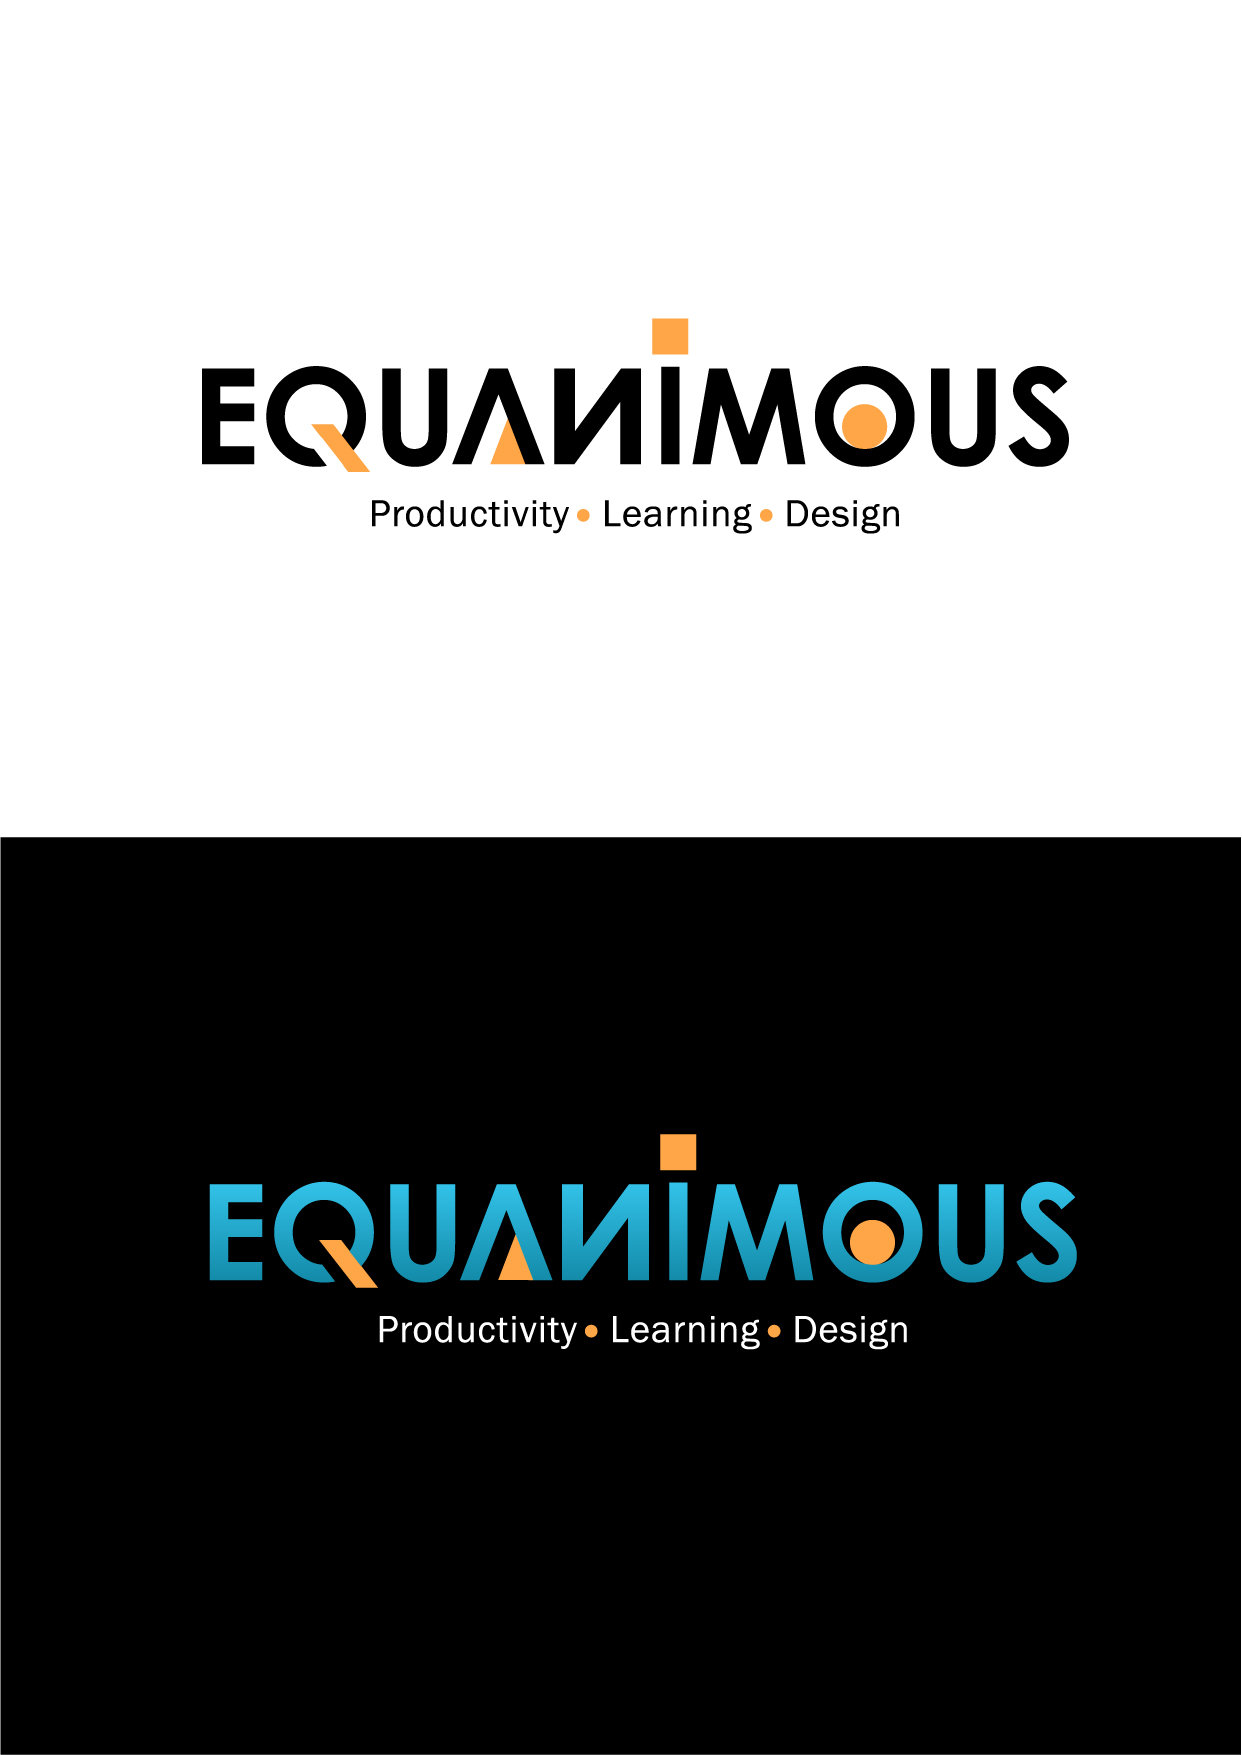 Logo Design by Wilfredo Mendoza - Entry No. 363 in the Logo Design Contest Logo Design : EQUANIMOUS : Productivity | Learning | Design.